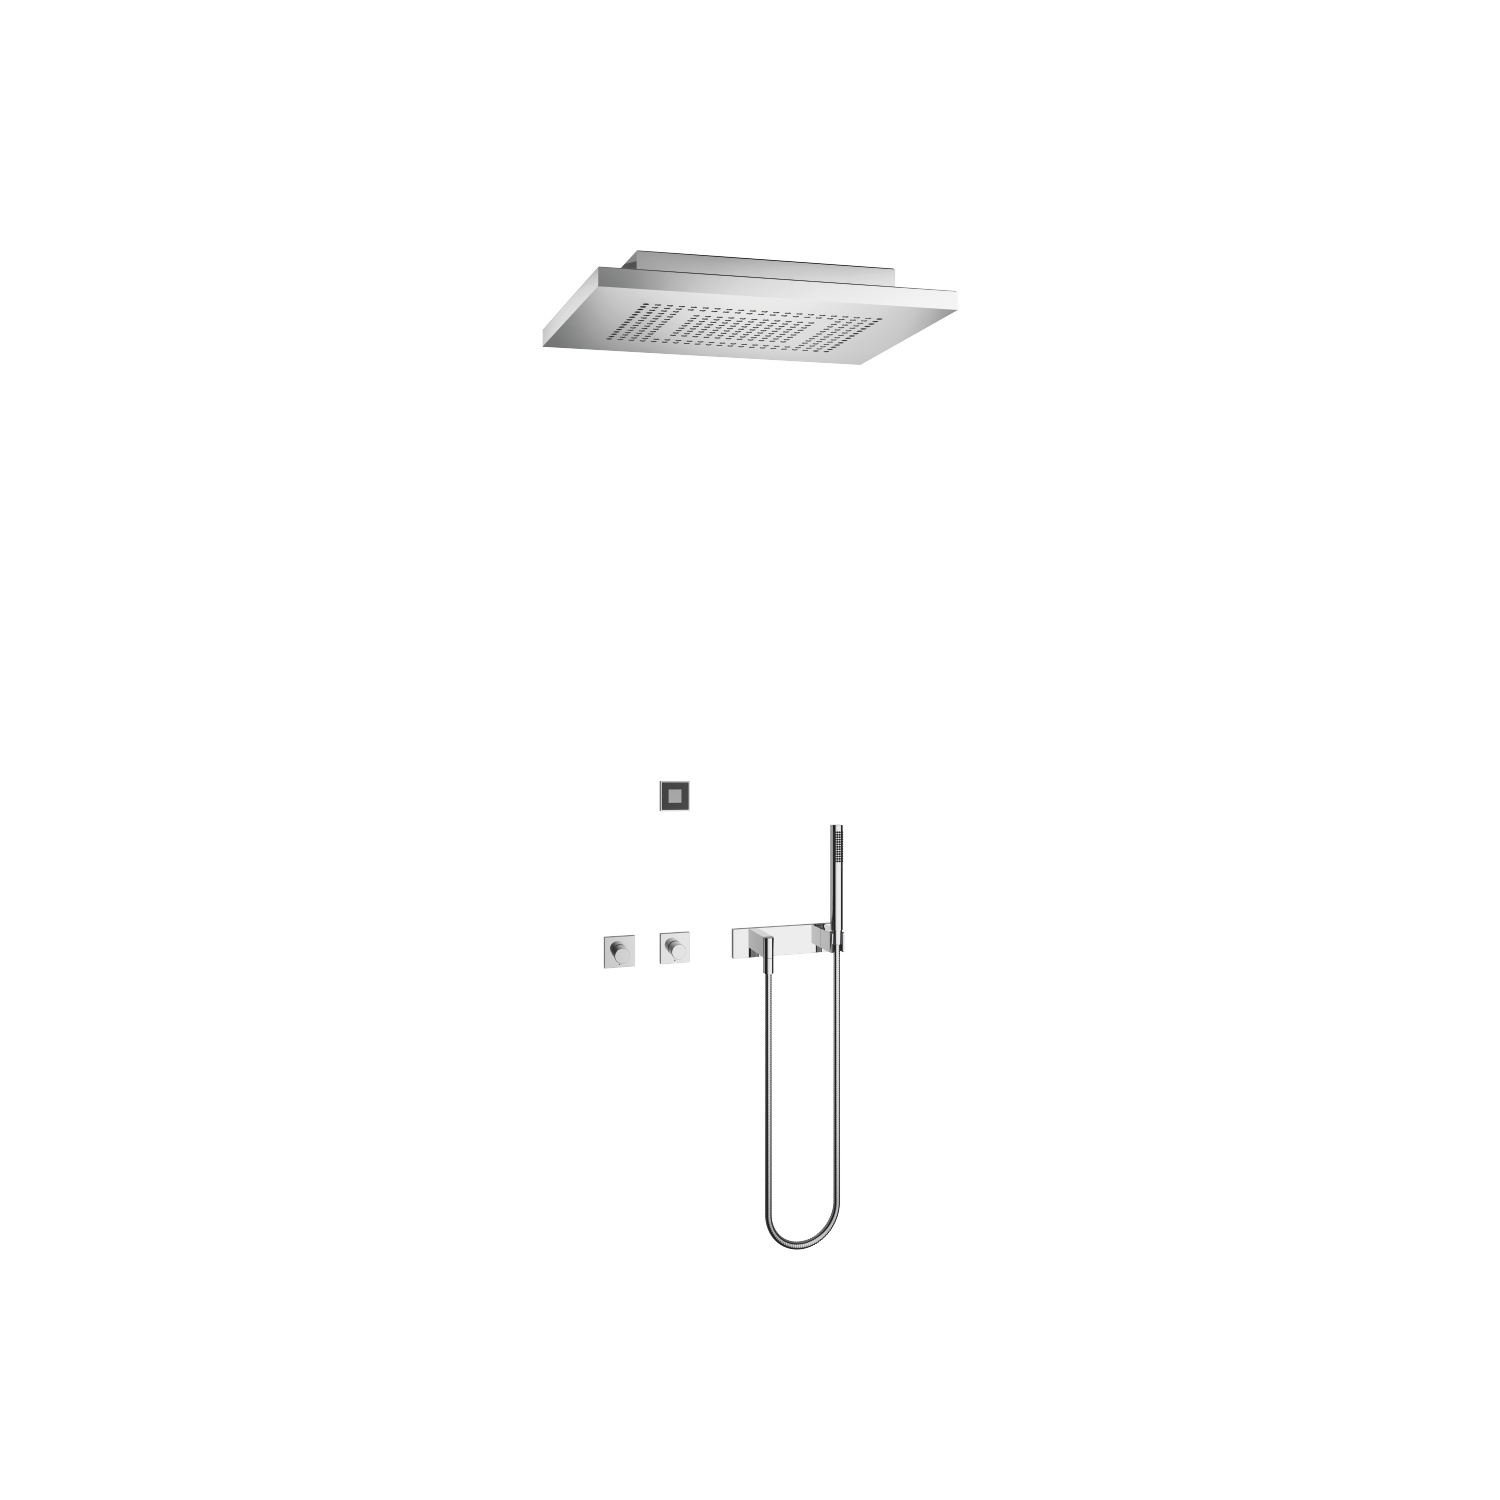 eUNIT SHOWERᴬᵀᵀ Smart Rain Shower - Polished stainless steel / chrome